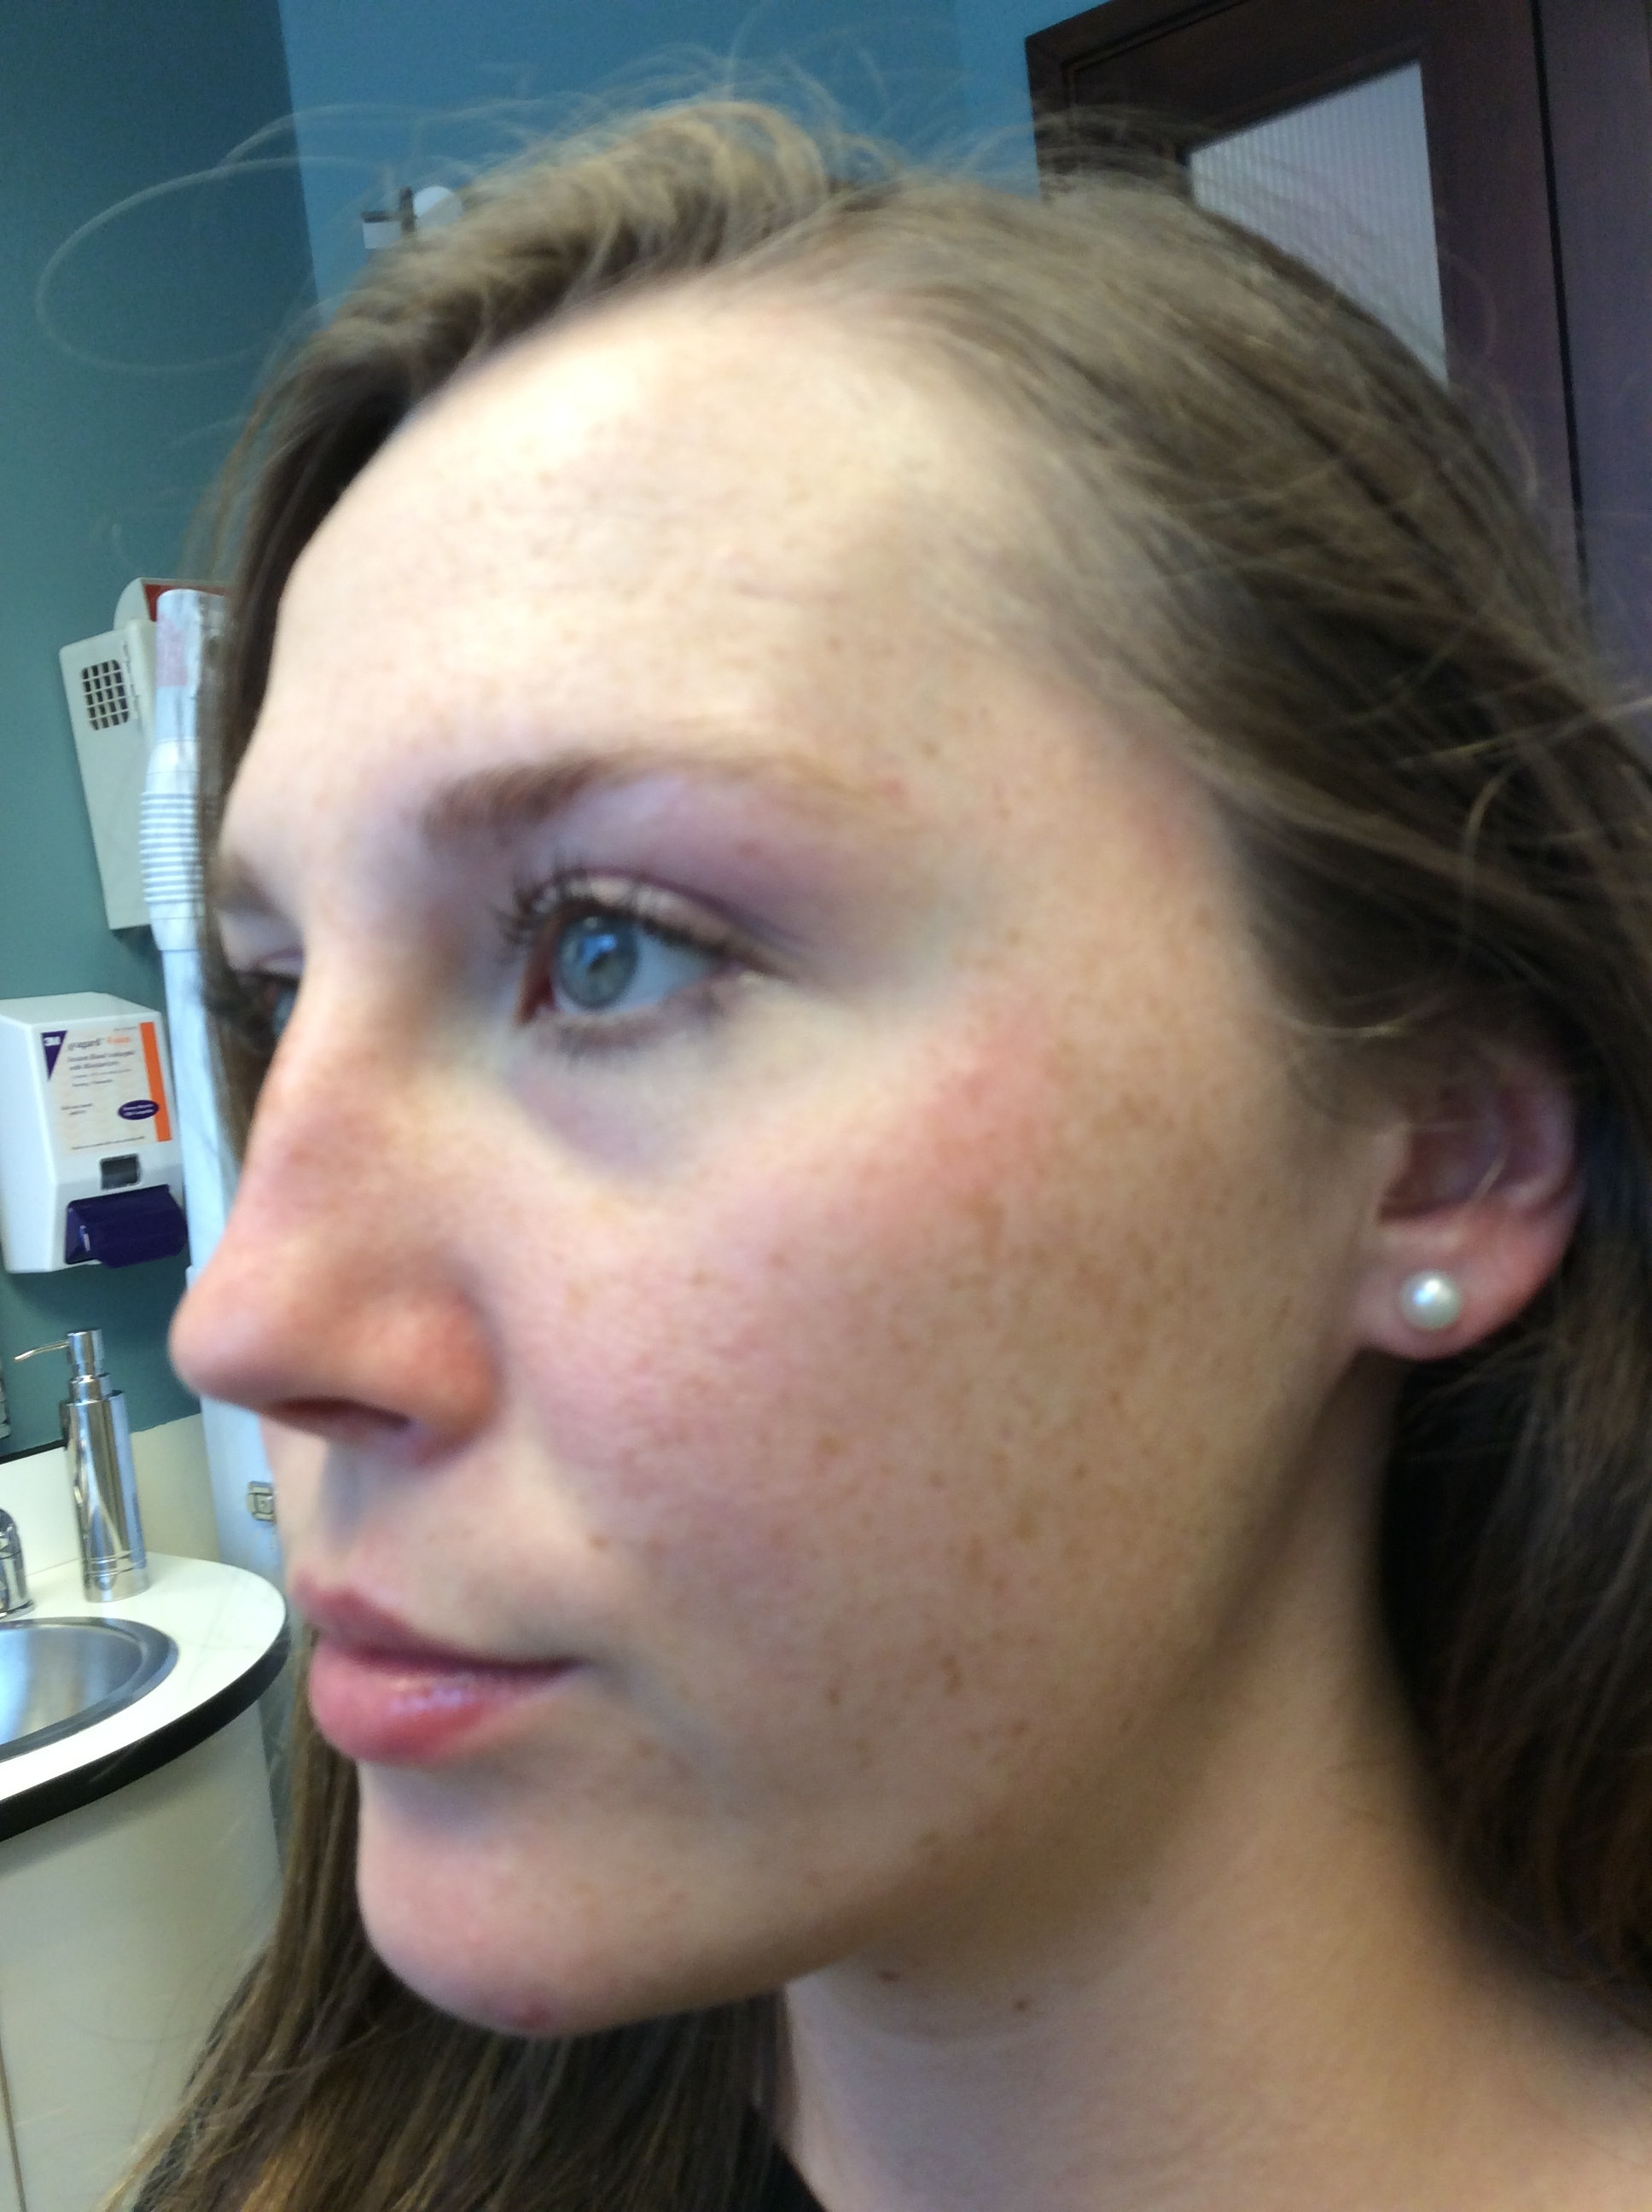 I Tried Laser Treatment To Help With My Rosacea & I Was Amazed With